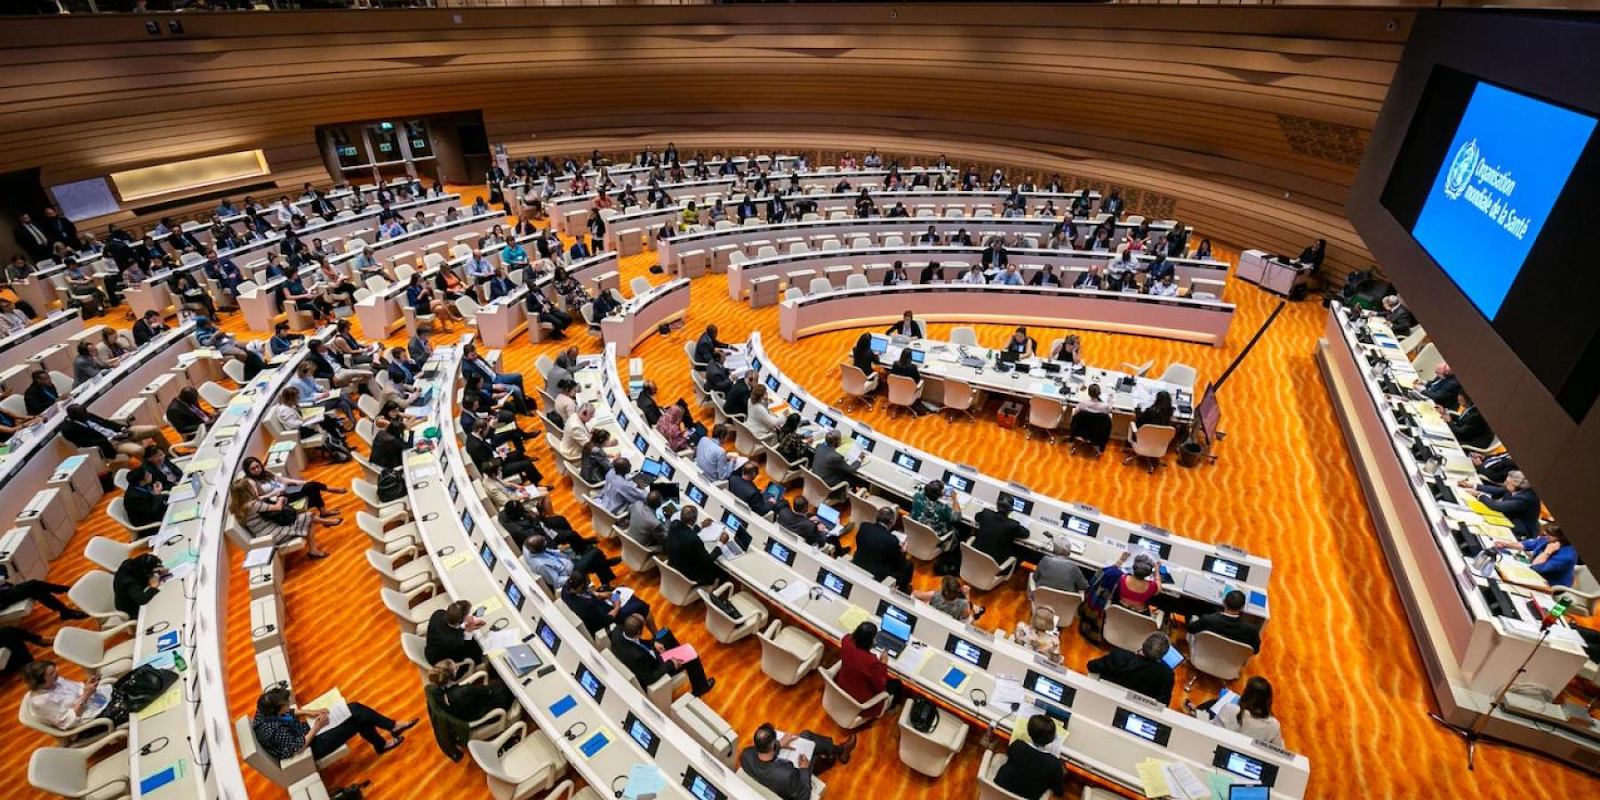 Aerial view of committee discussions on the final day of the 71st World Health Assembly, held in Geneva, Switzerland from May 21 to May 26, 2018. Photo:  WHO/A. Tardy